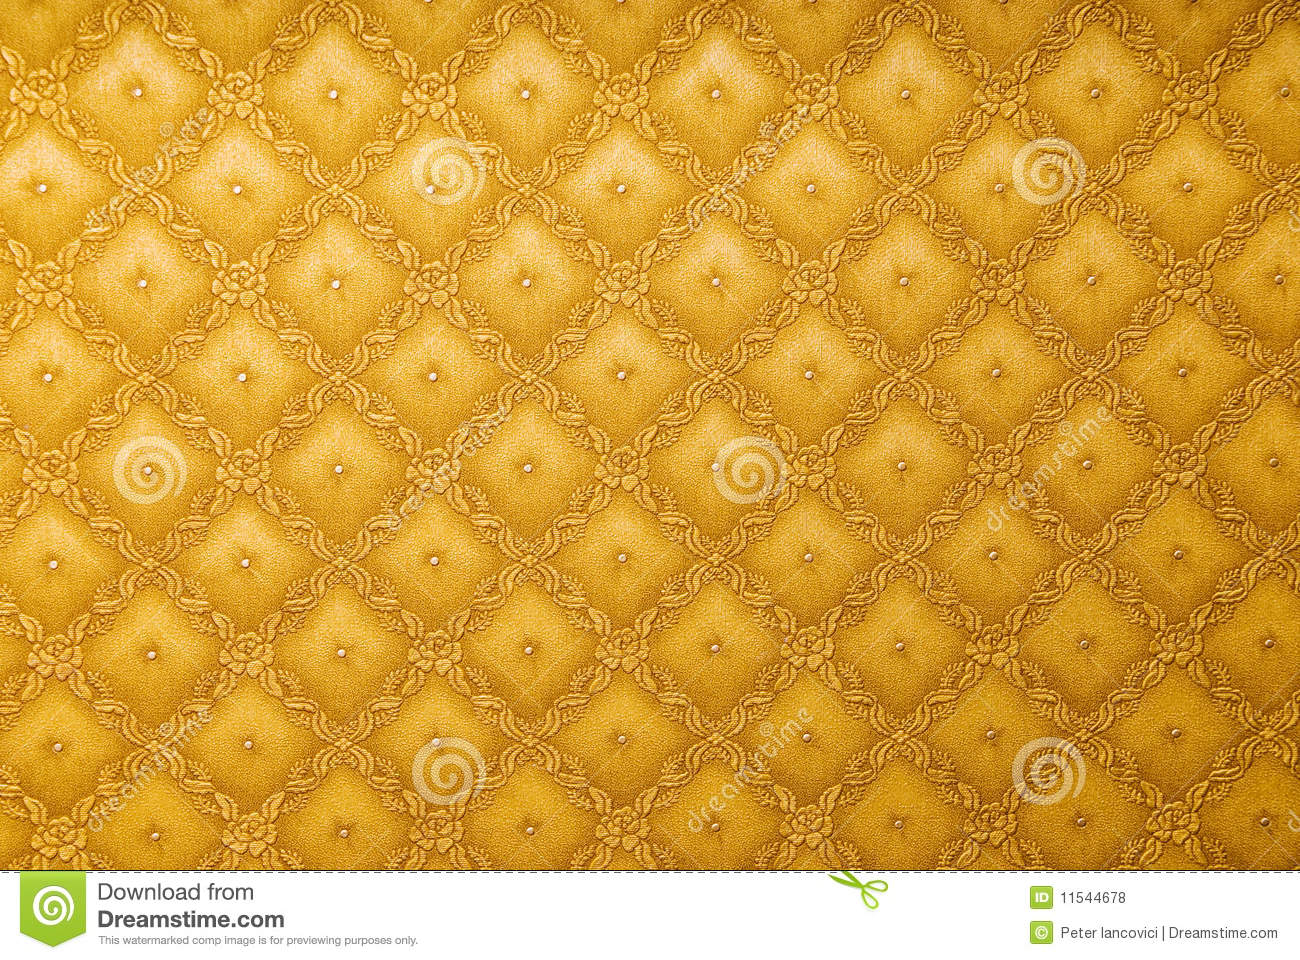 gold abstract wallpaper wch7i - photo #33